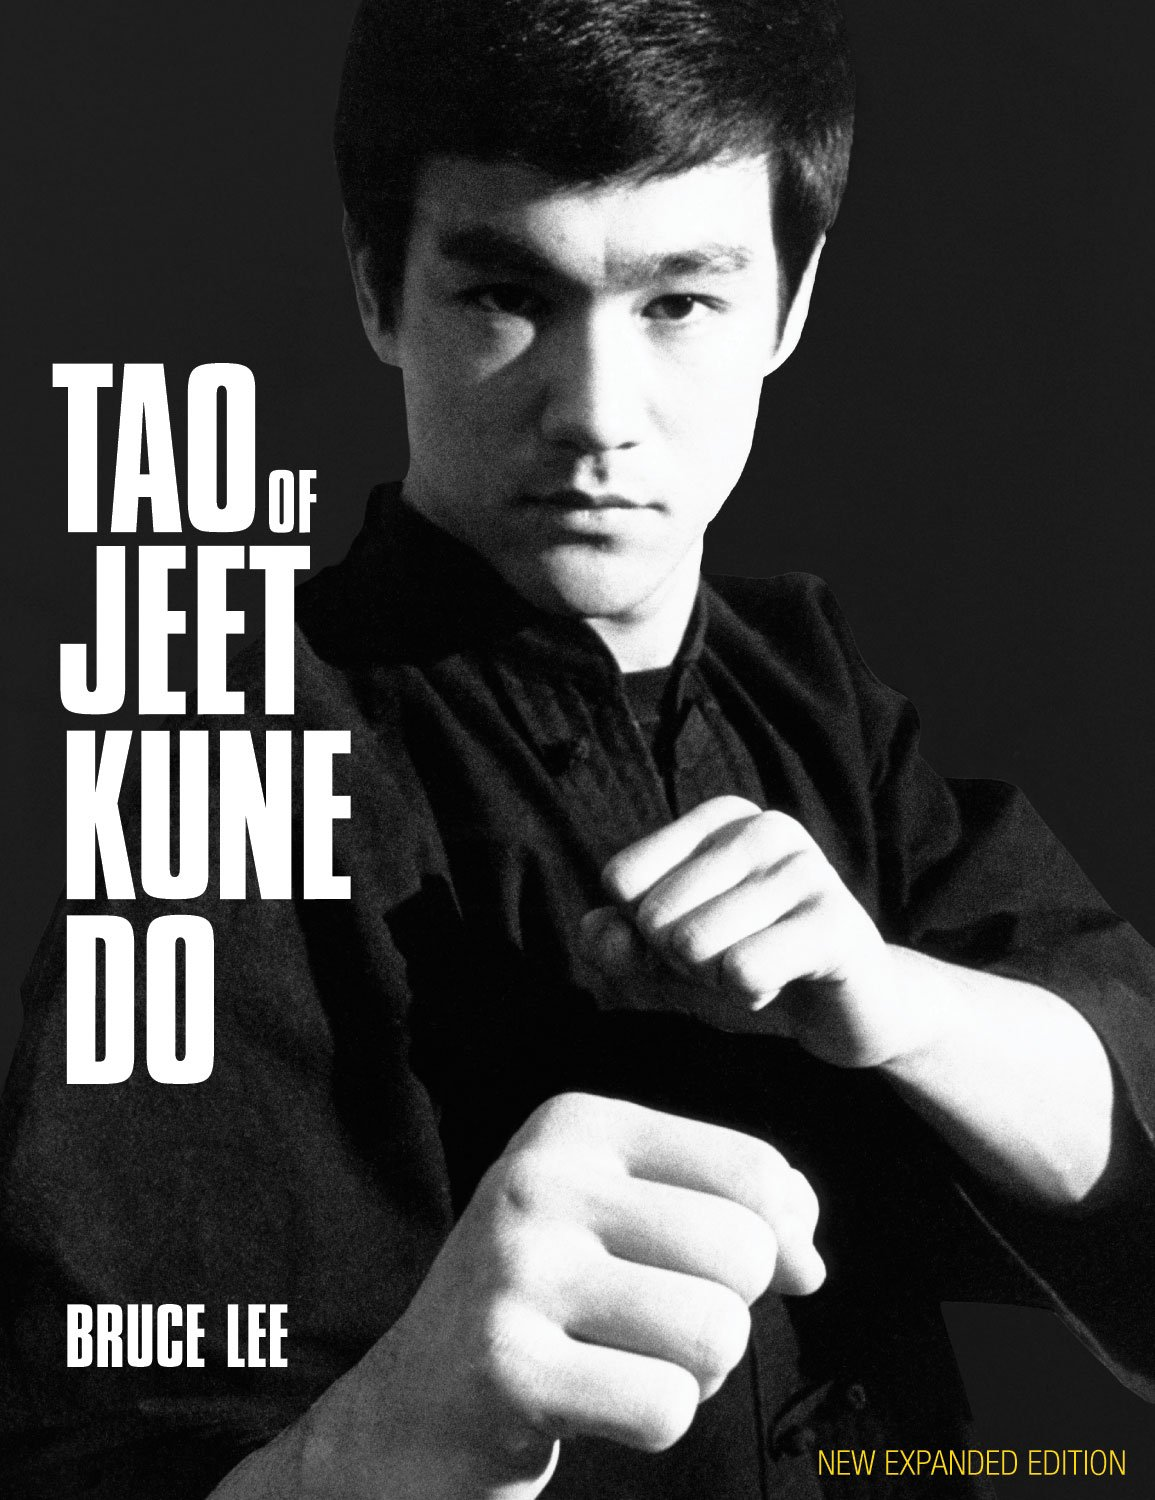 Tao of Jeet Kune Do New Expanded Edition Bruce Lee 1155x1500